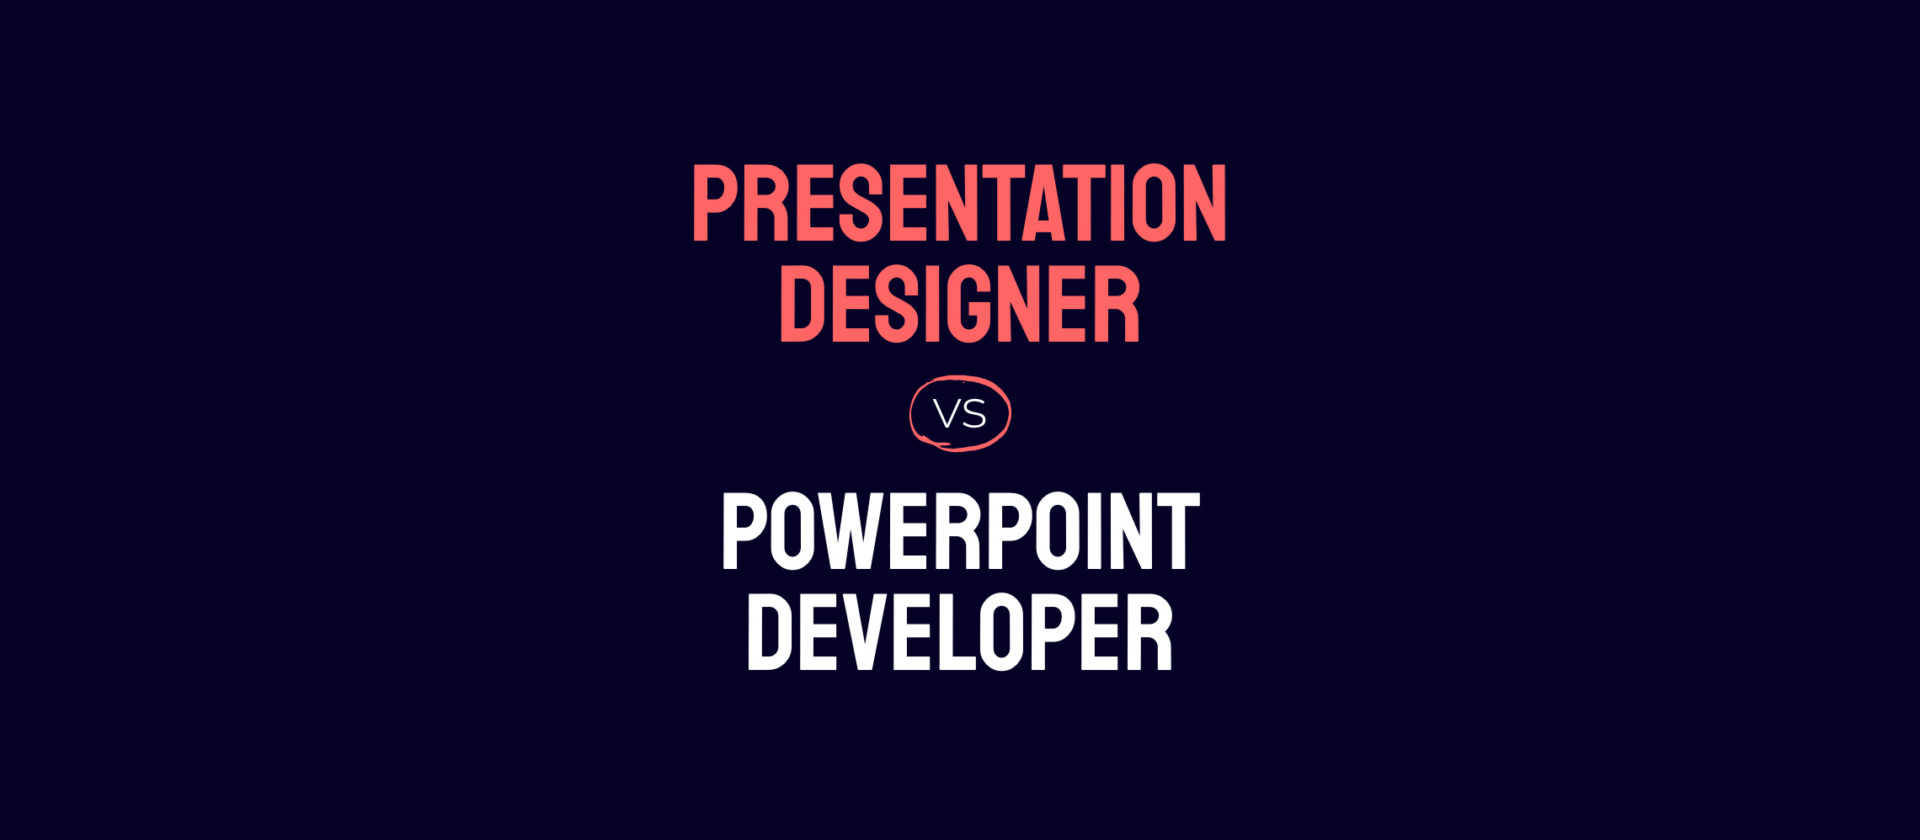 What's the difference between a Presentation Designer and a PowerPoint Developer?